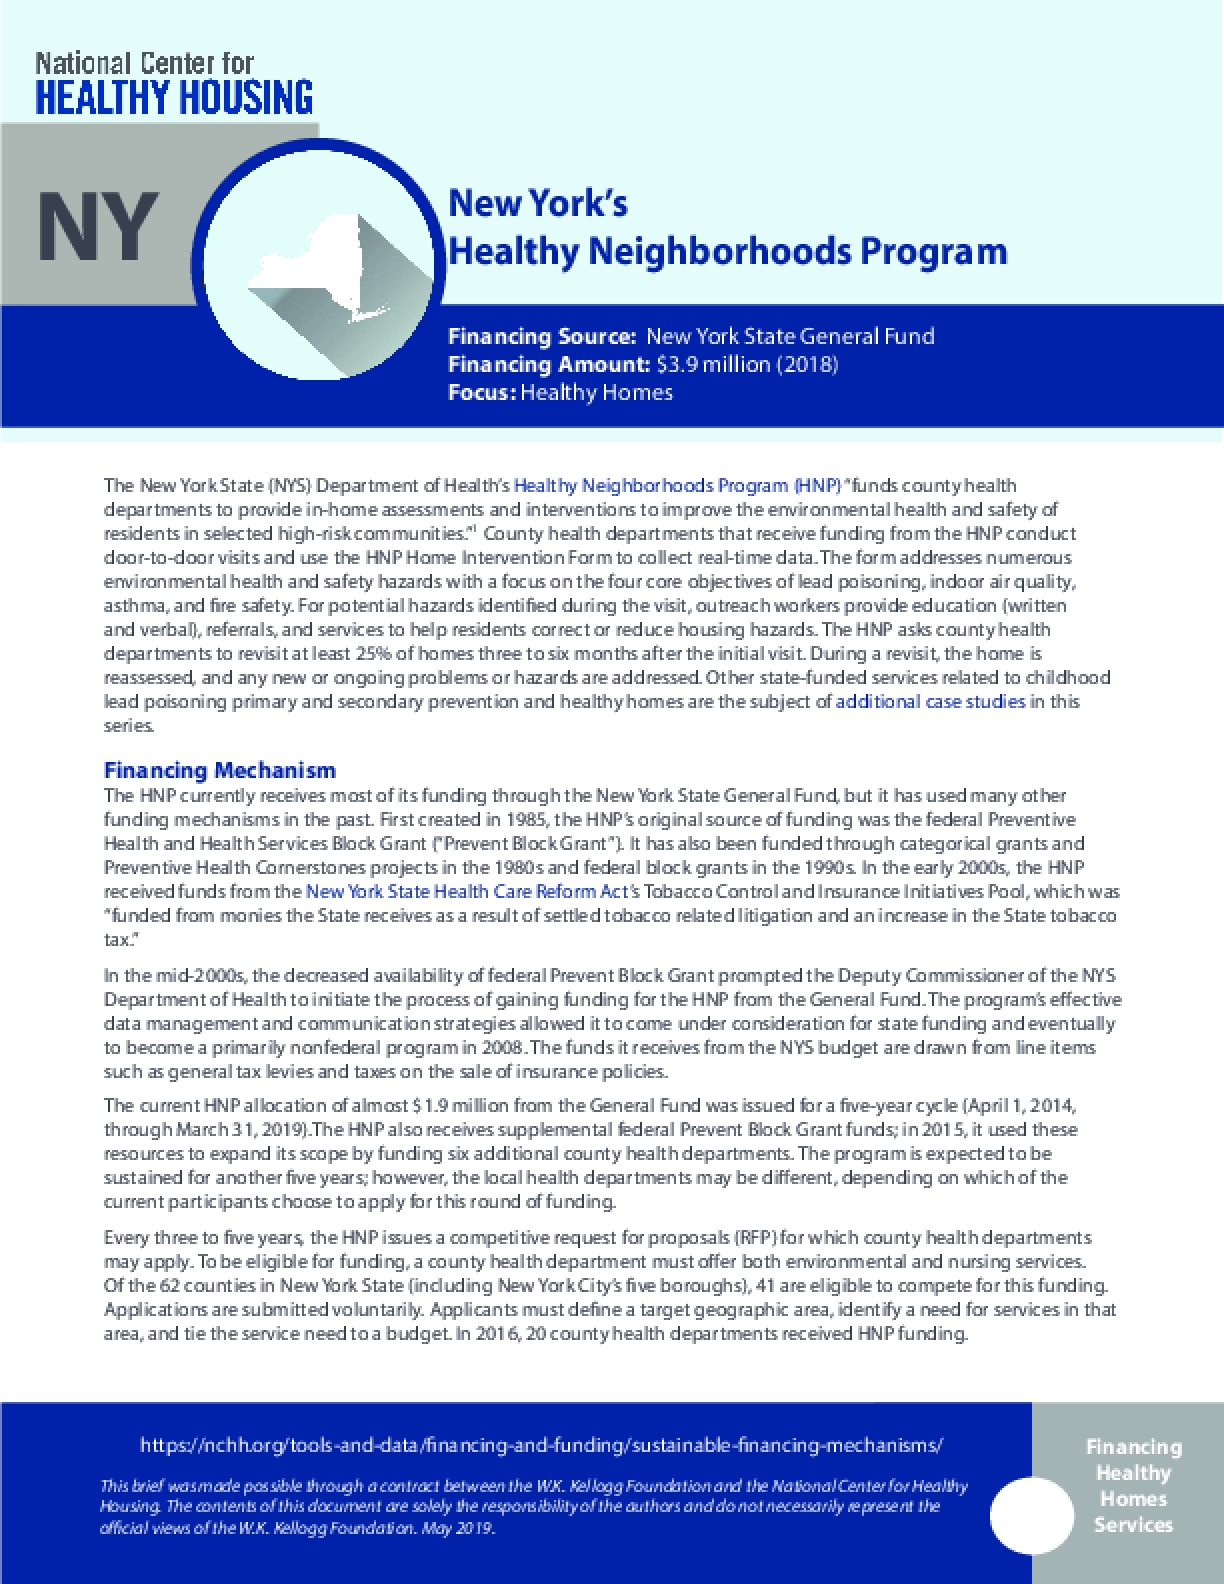 New York's Healthy Neighborhoods Program